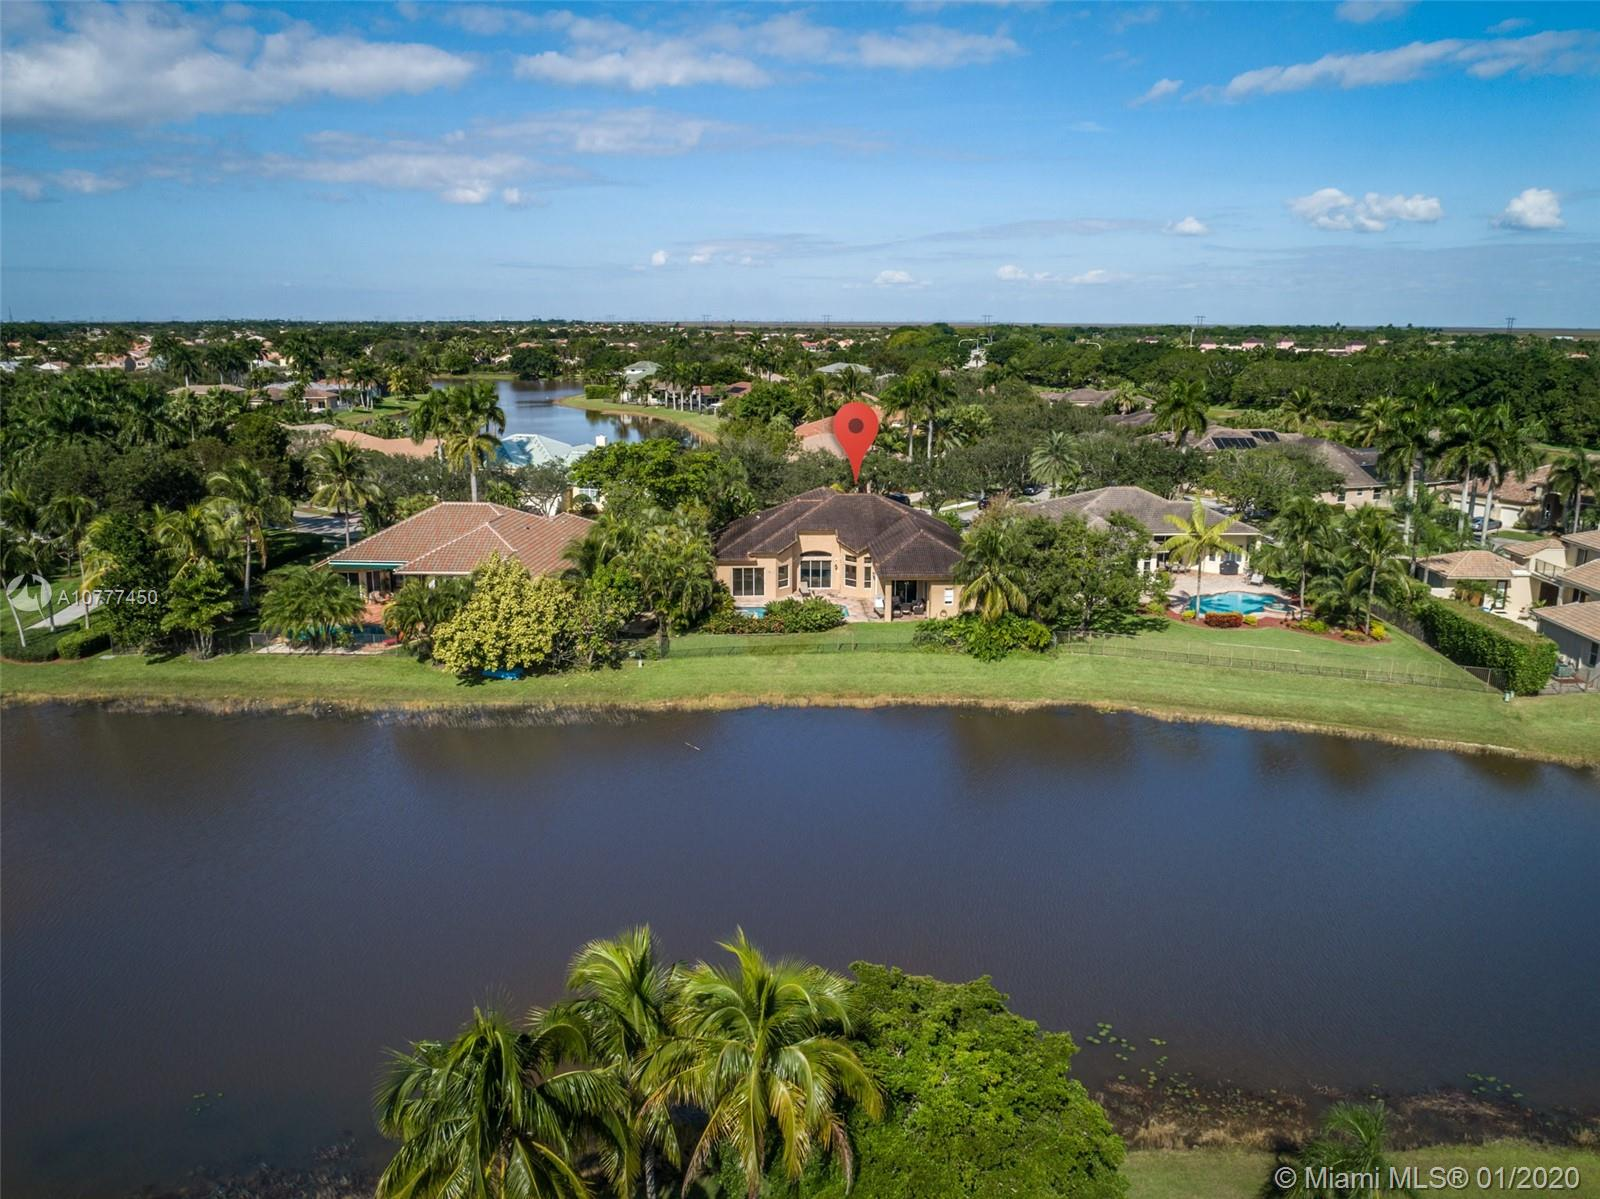 **BANK APPROVED** short sale in The Landings. 4 bed/3.5 bath/den home on 12,001sf waterfront lot with pool. Triple-split floor plan with 14' ceilings. Tile and wood flooring throughout. Open kitchen with double oven, stainless steel appliances and granite counter tops. 3-car garage.